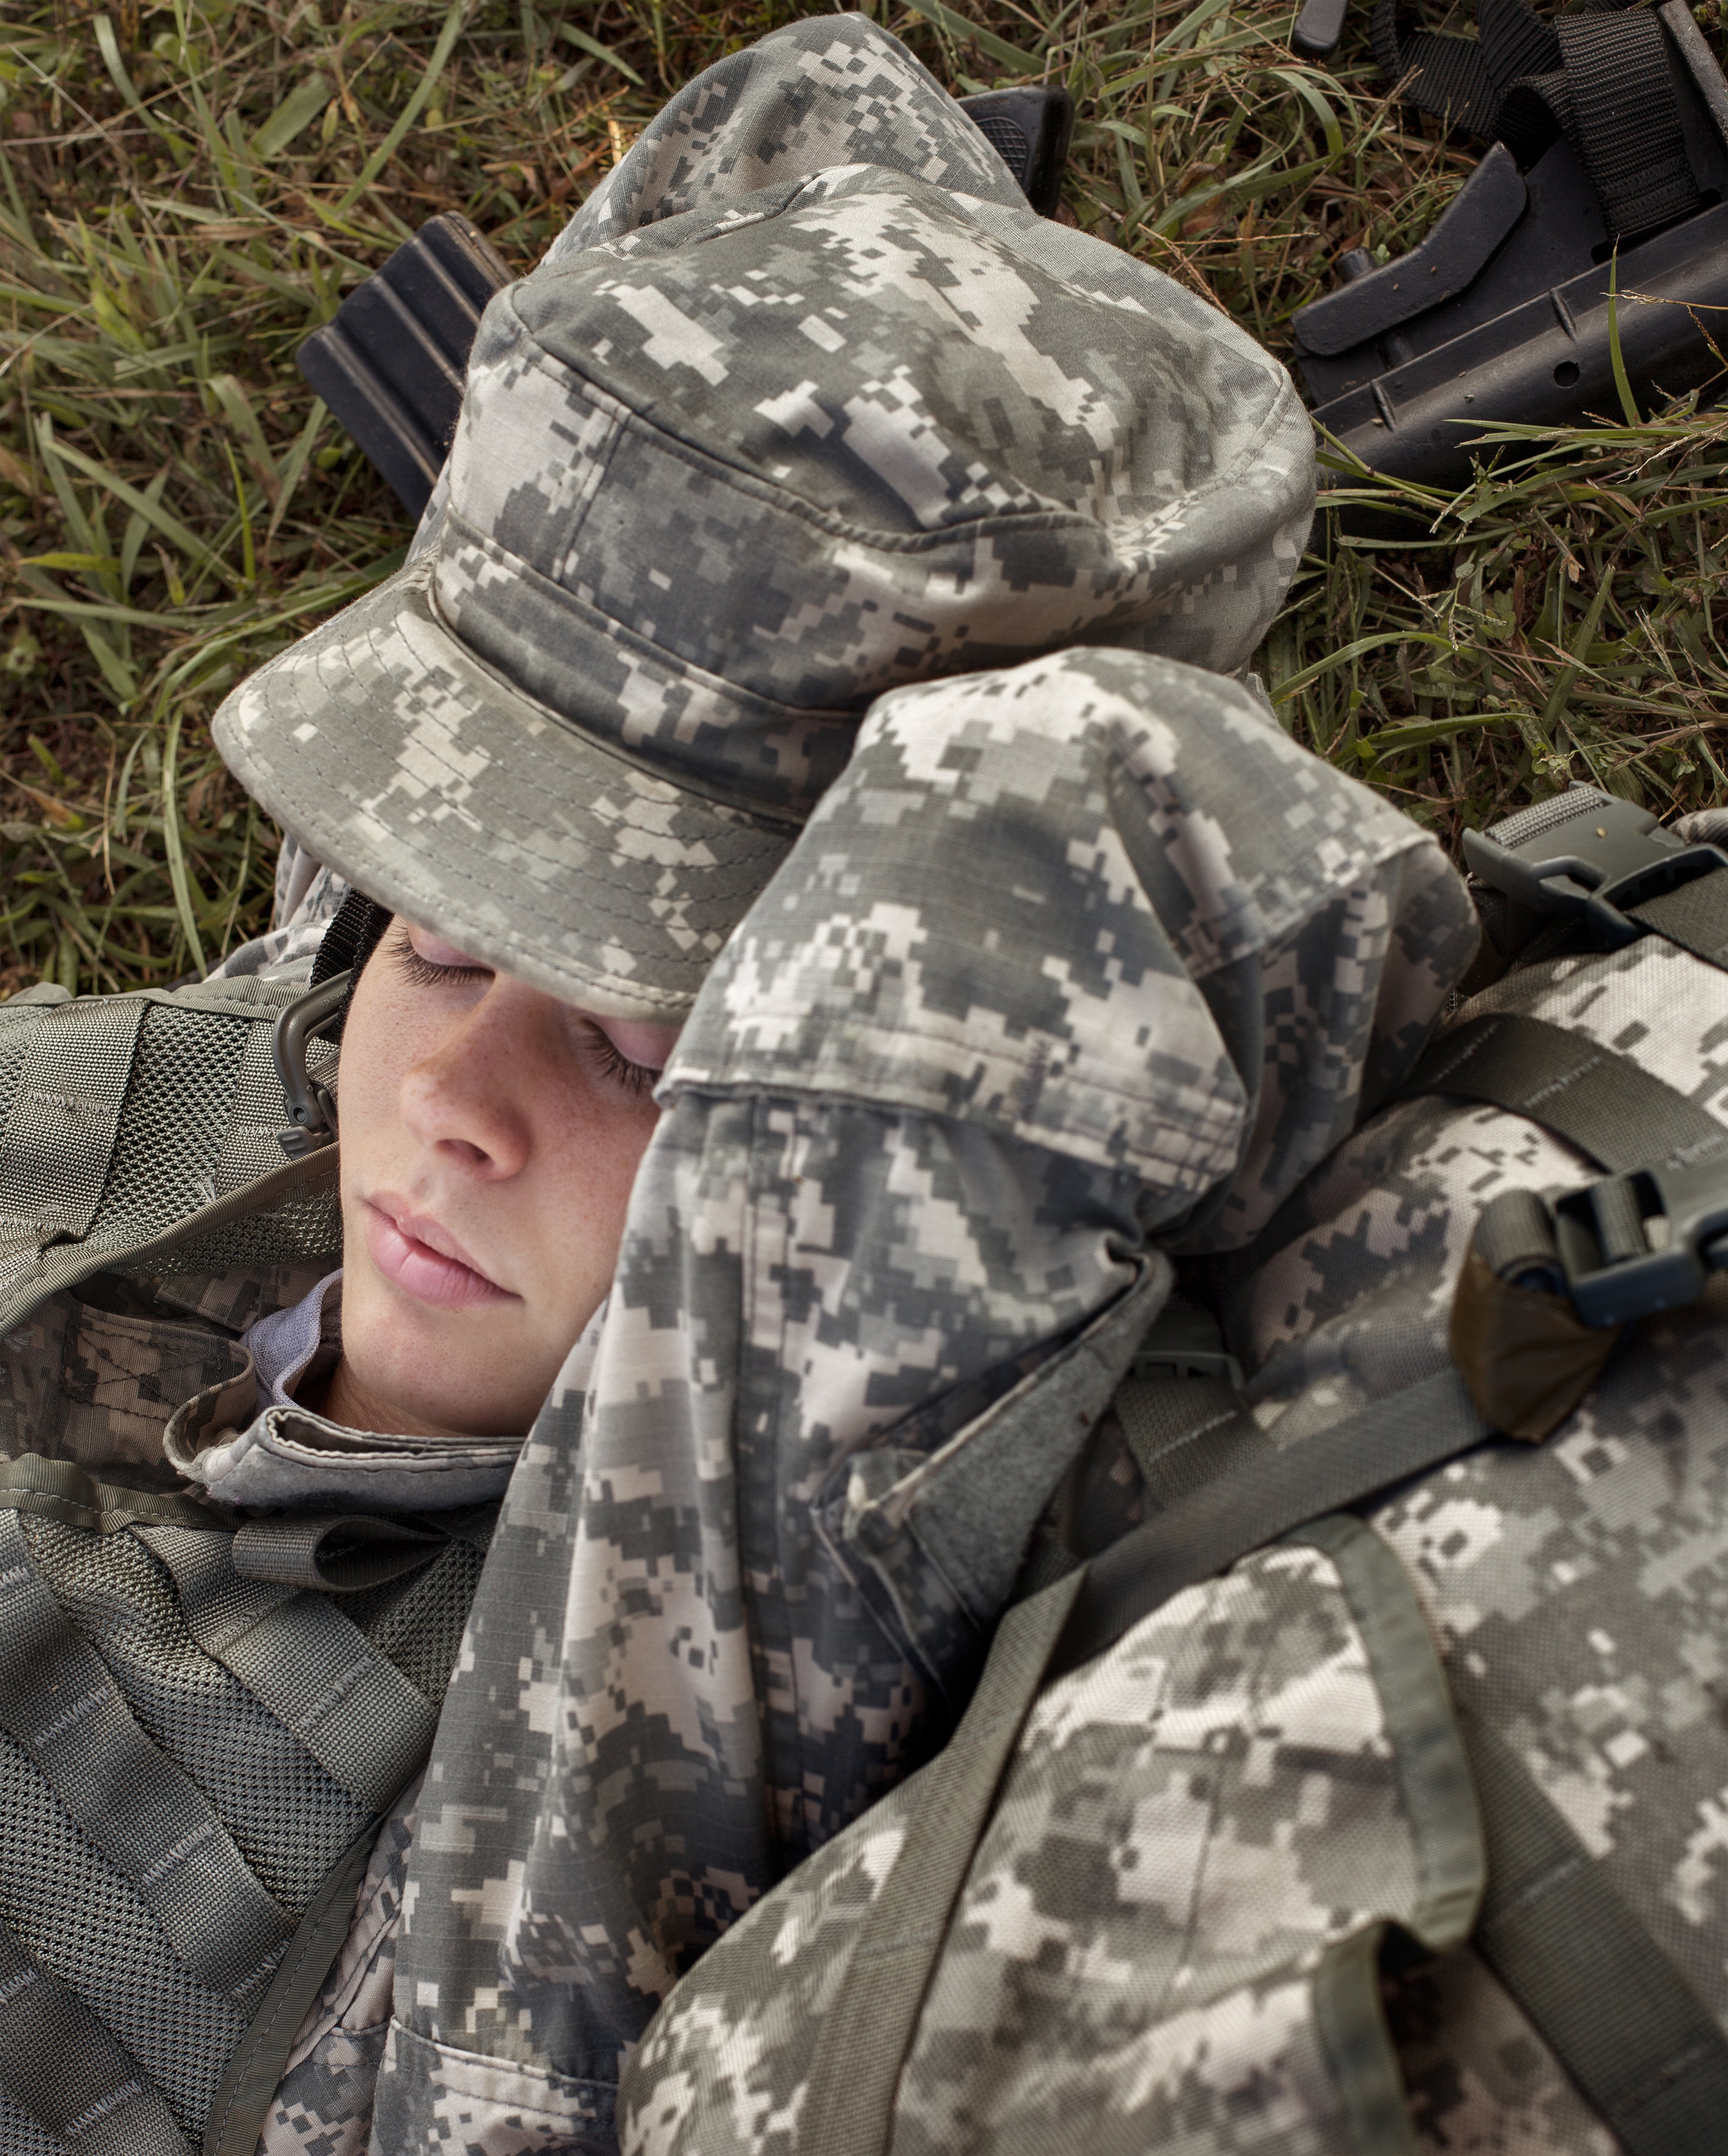 Powers Sleeping, Fort Dix, New Jersey, 2012